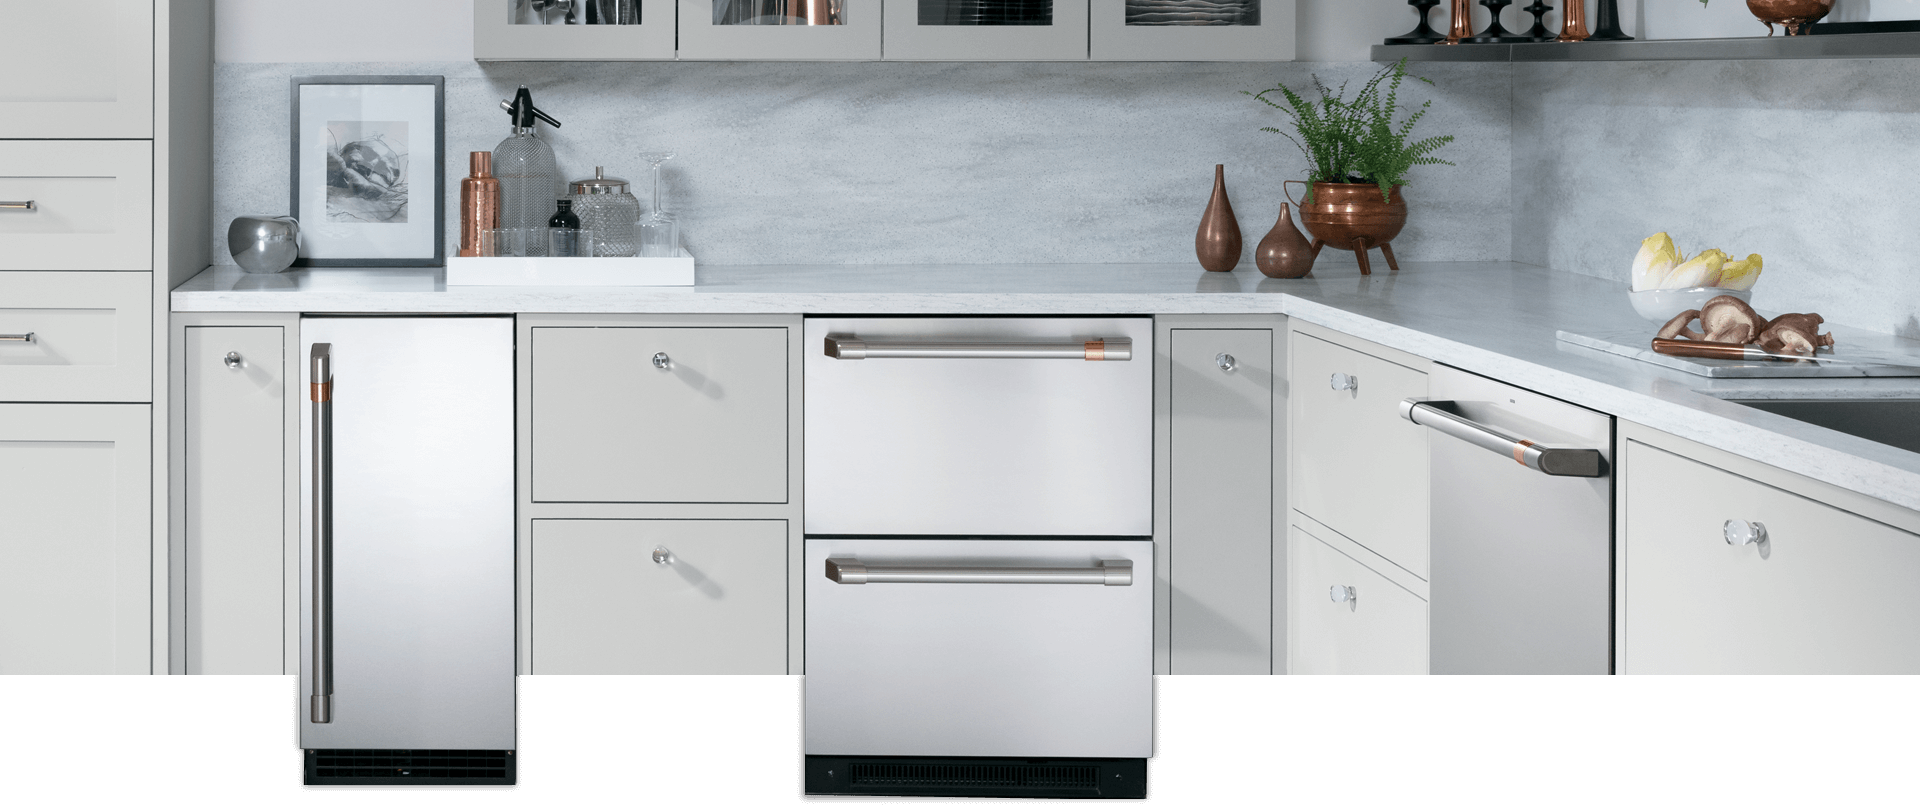 Undercounter Refrigerators and Ice Makers